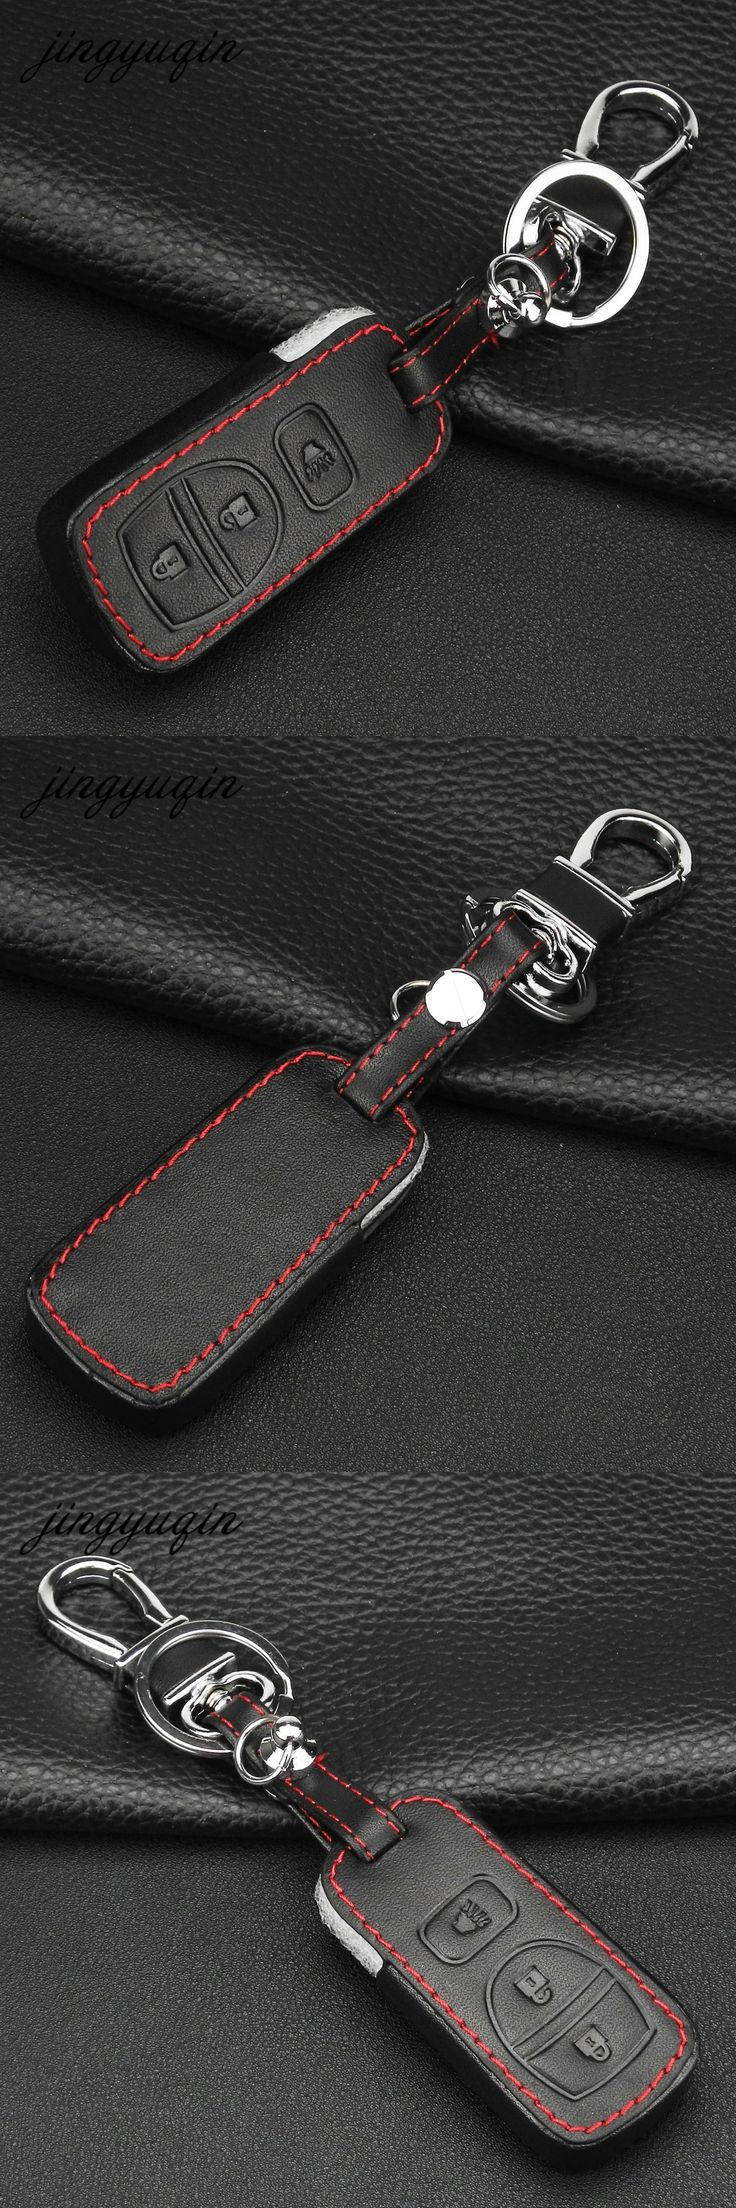 jingyuqin Leather Remote Car Key Cover 3 Button for Nissan Armada Frontier Murano Pathfinder Quest Titan Xterra Fob Case